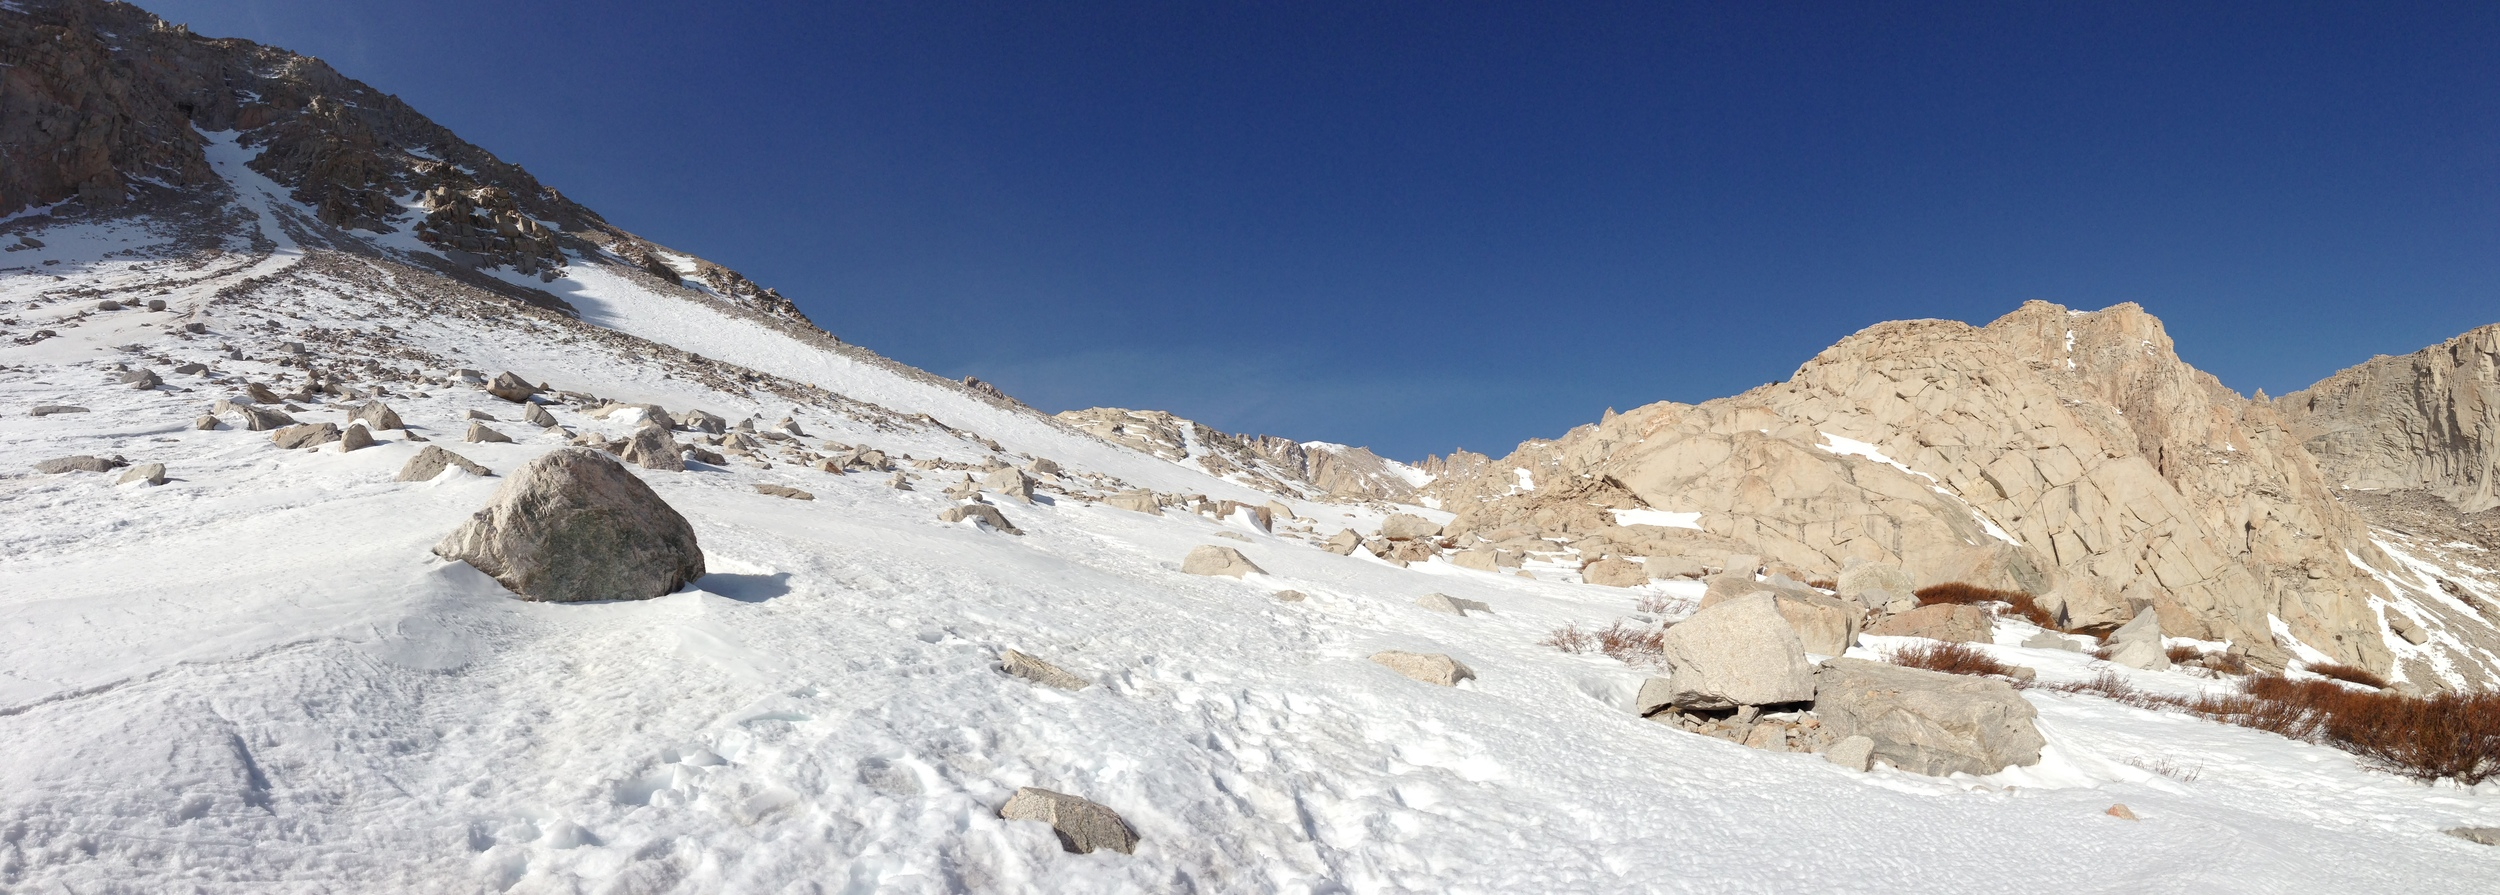 Snow Coverage, Mt. Whitney Trail, April 8, 2013